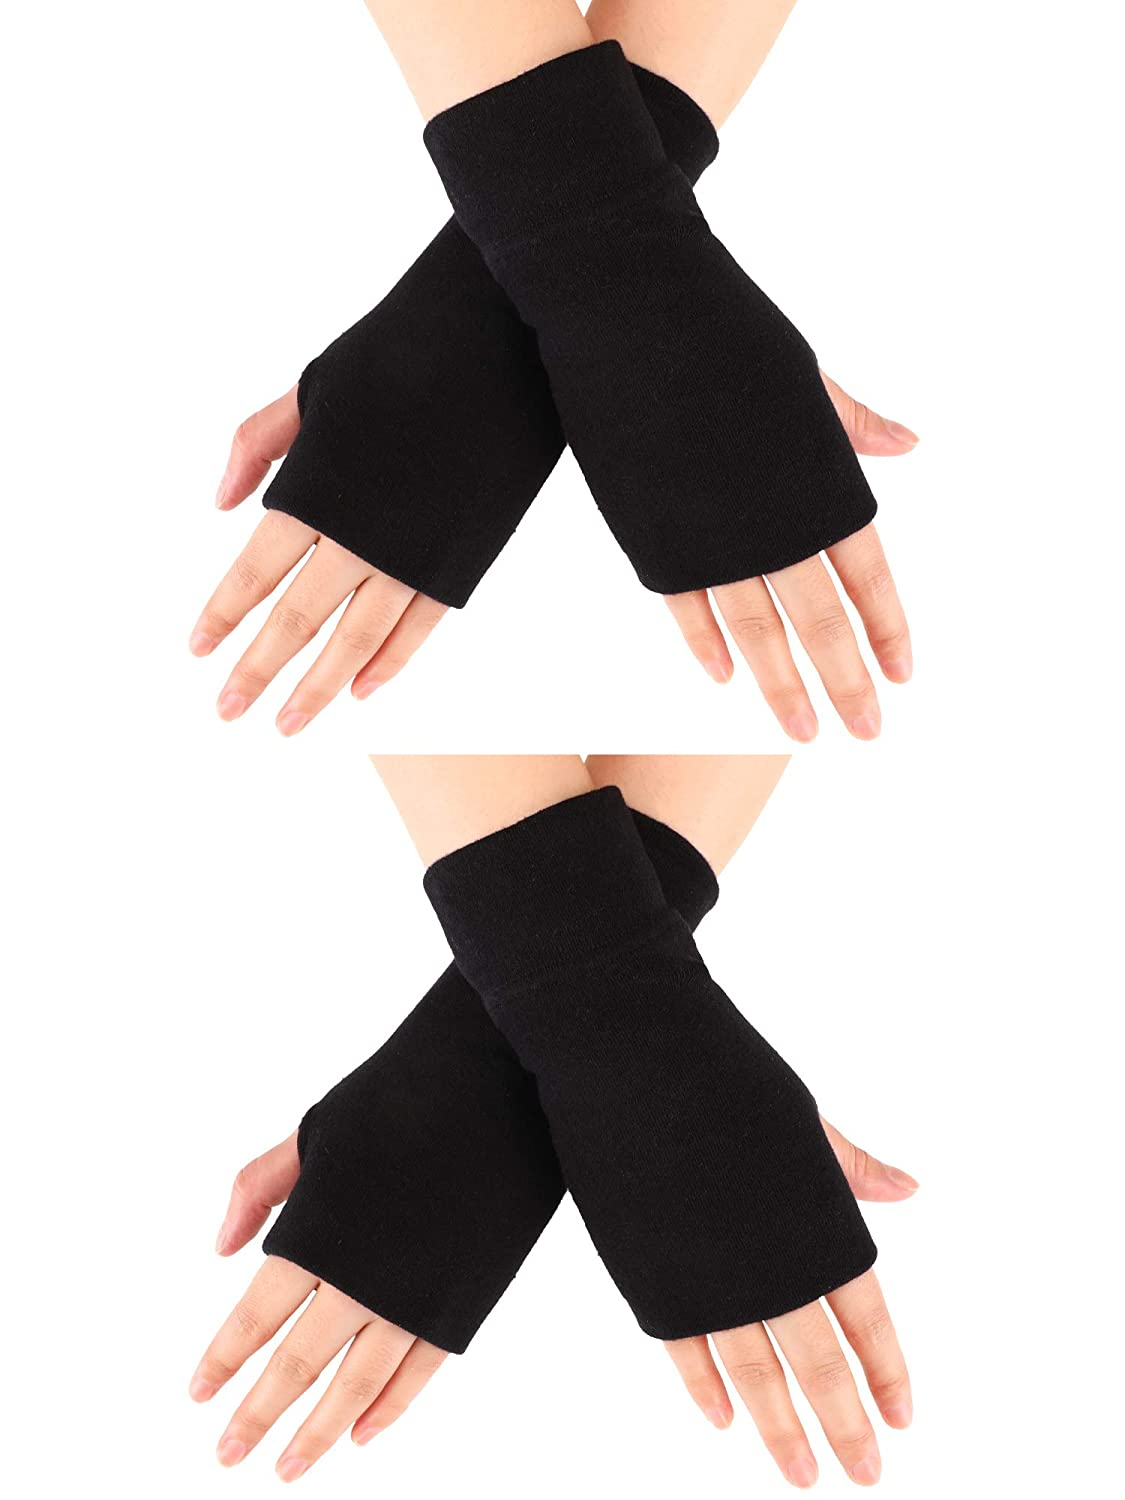 Blulu 2 Pairs Unisex Fingerless Gloves Stretchy Knitted Gloves Fingerless Thumb Hole Gloves Wrist Length Driving Arm Warmers